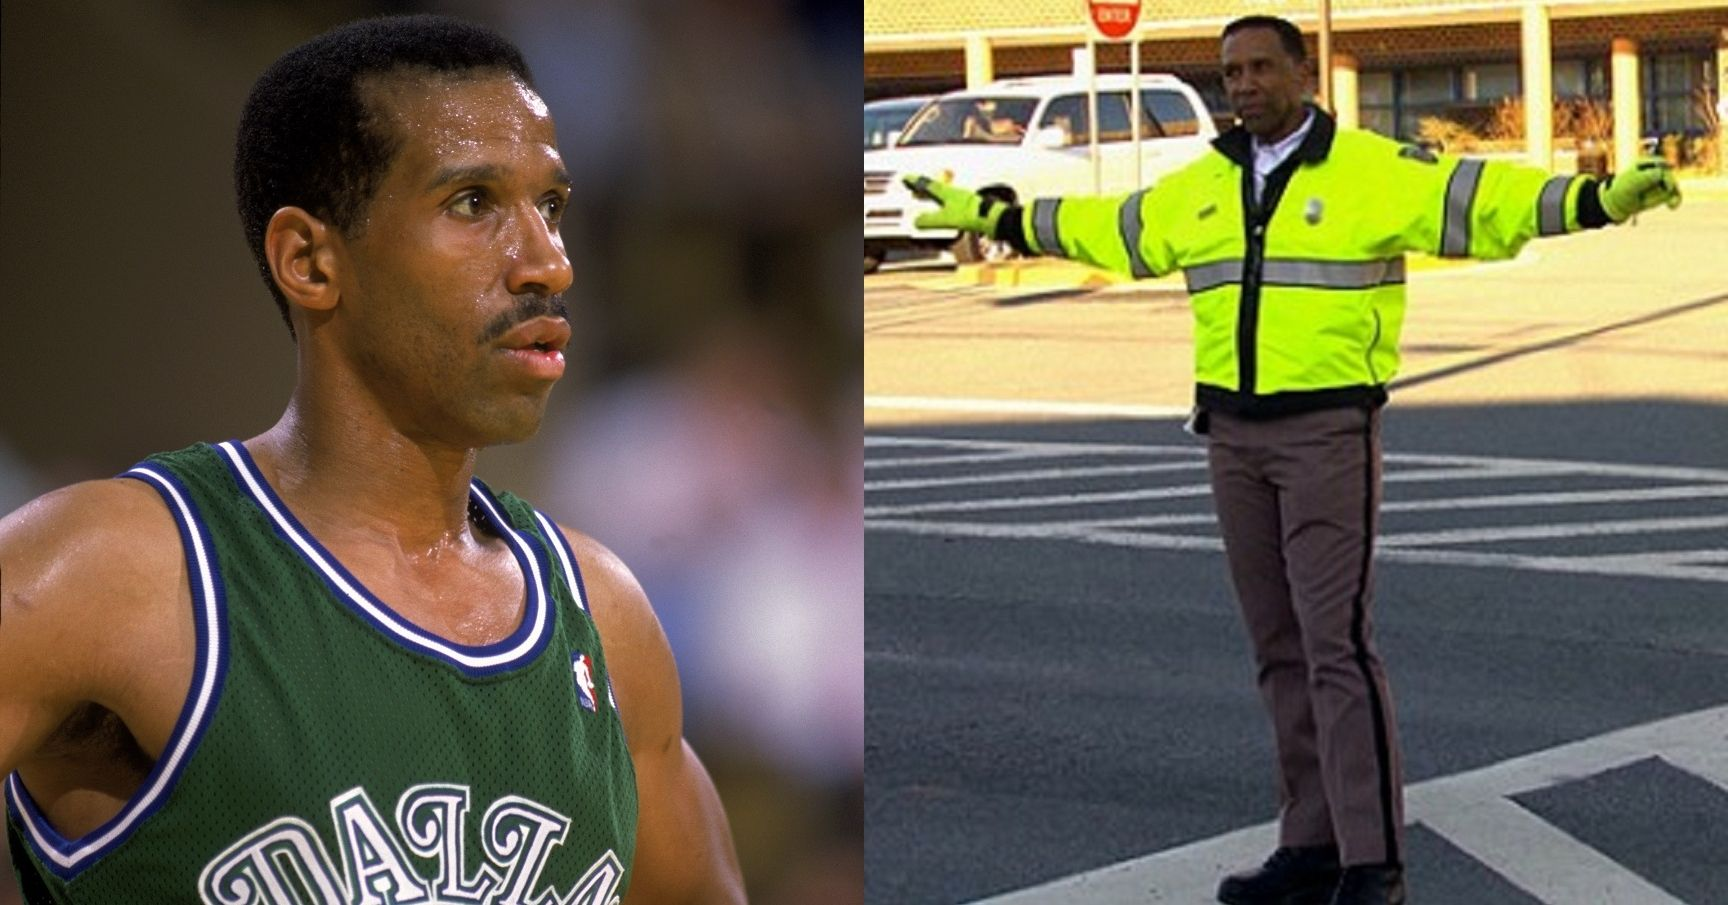 15 Retired Athletes Who Found Regular Jobs